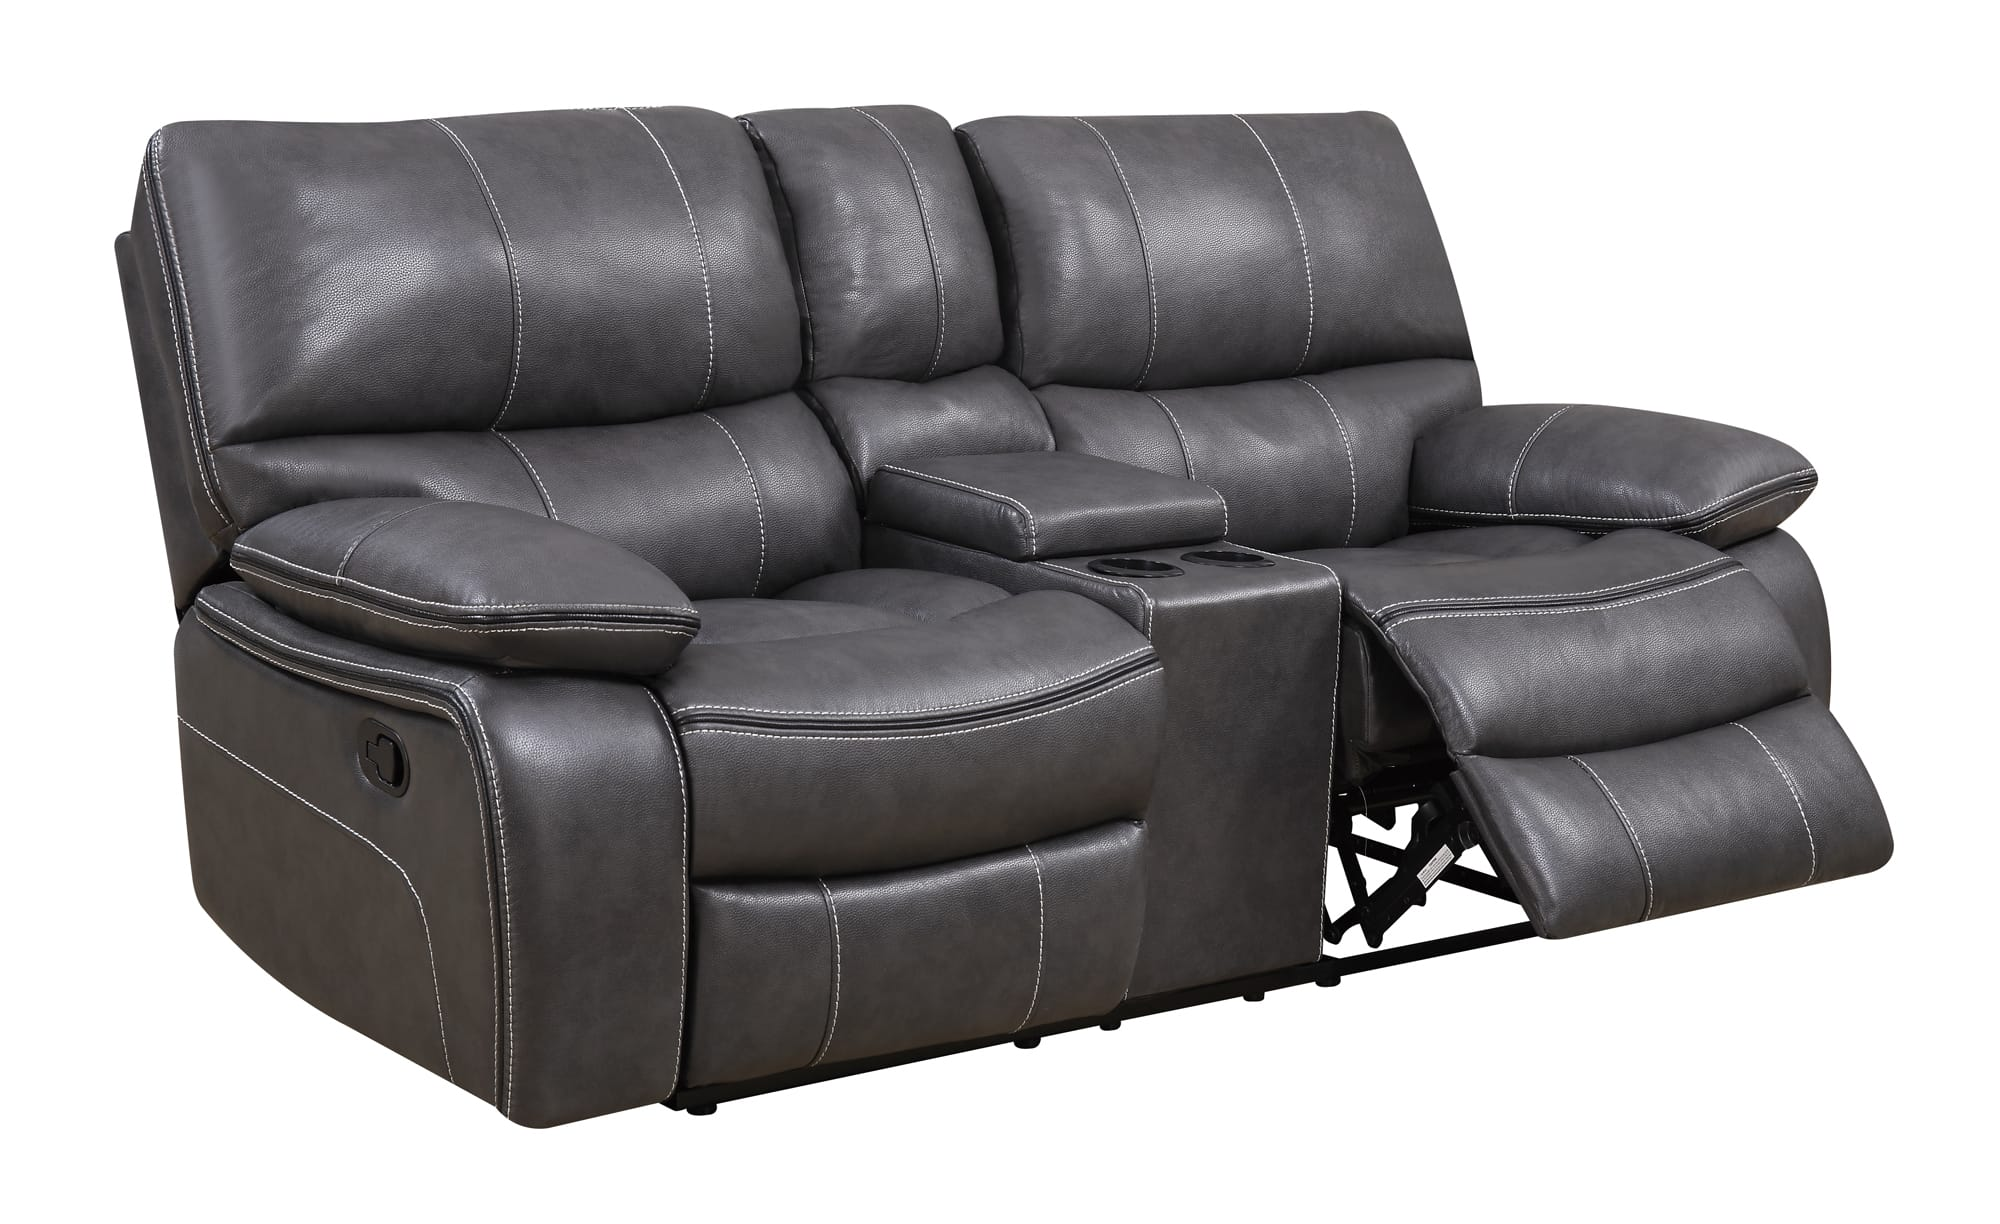 U0040 grey black leather console reclining loveseat by global furniture Leather loveseat recliners